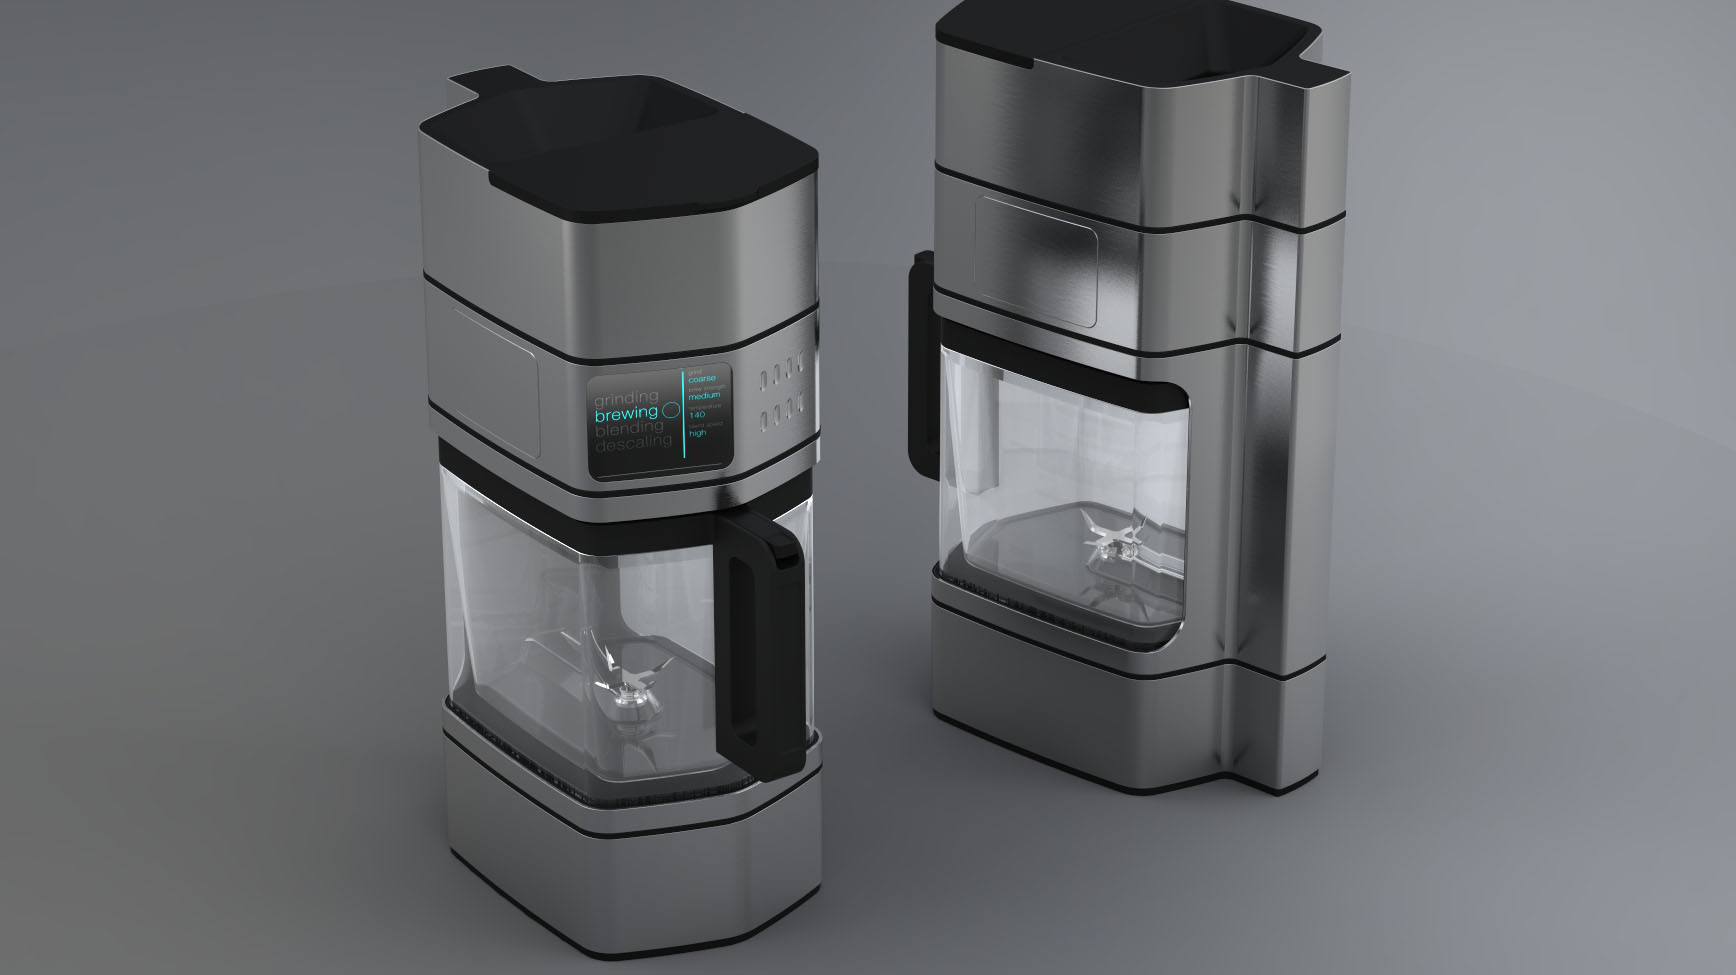 OneOff Coffemaker Concept 2 090915.406.jpg